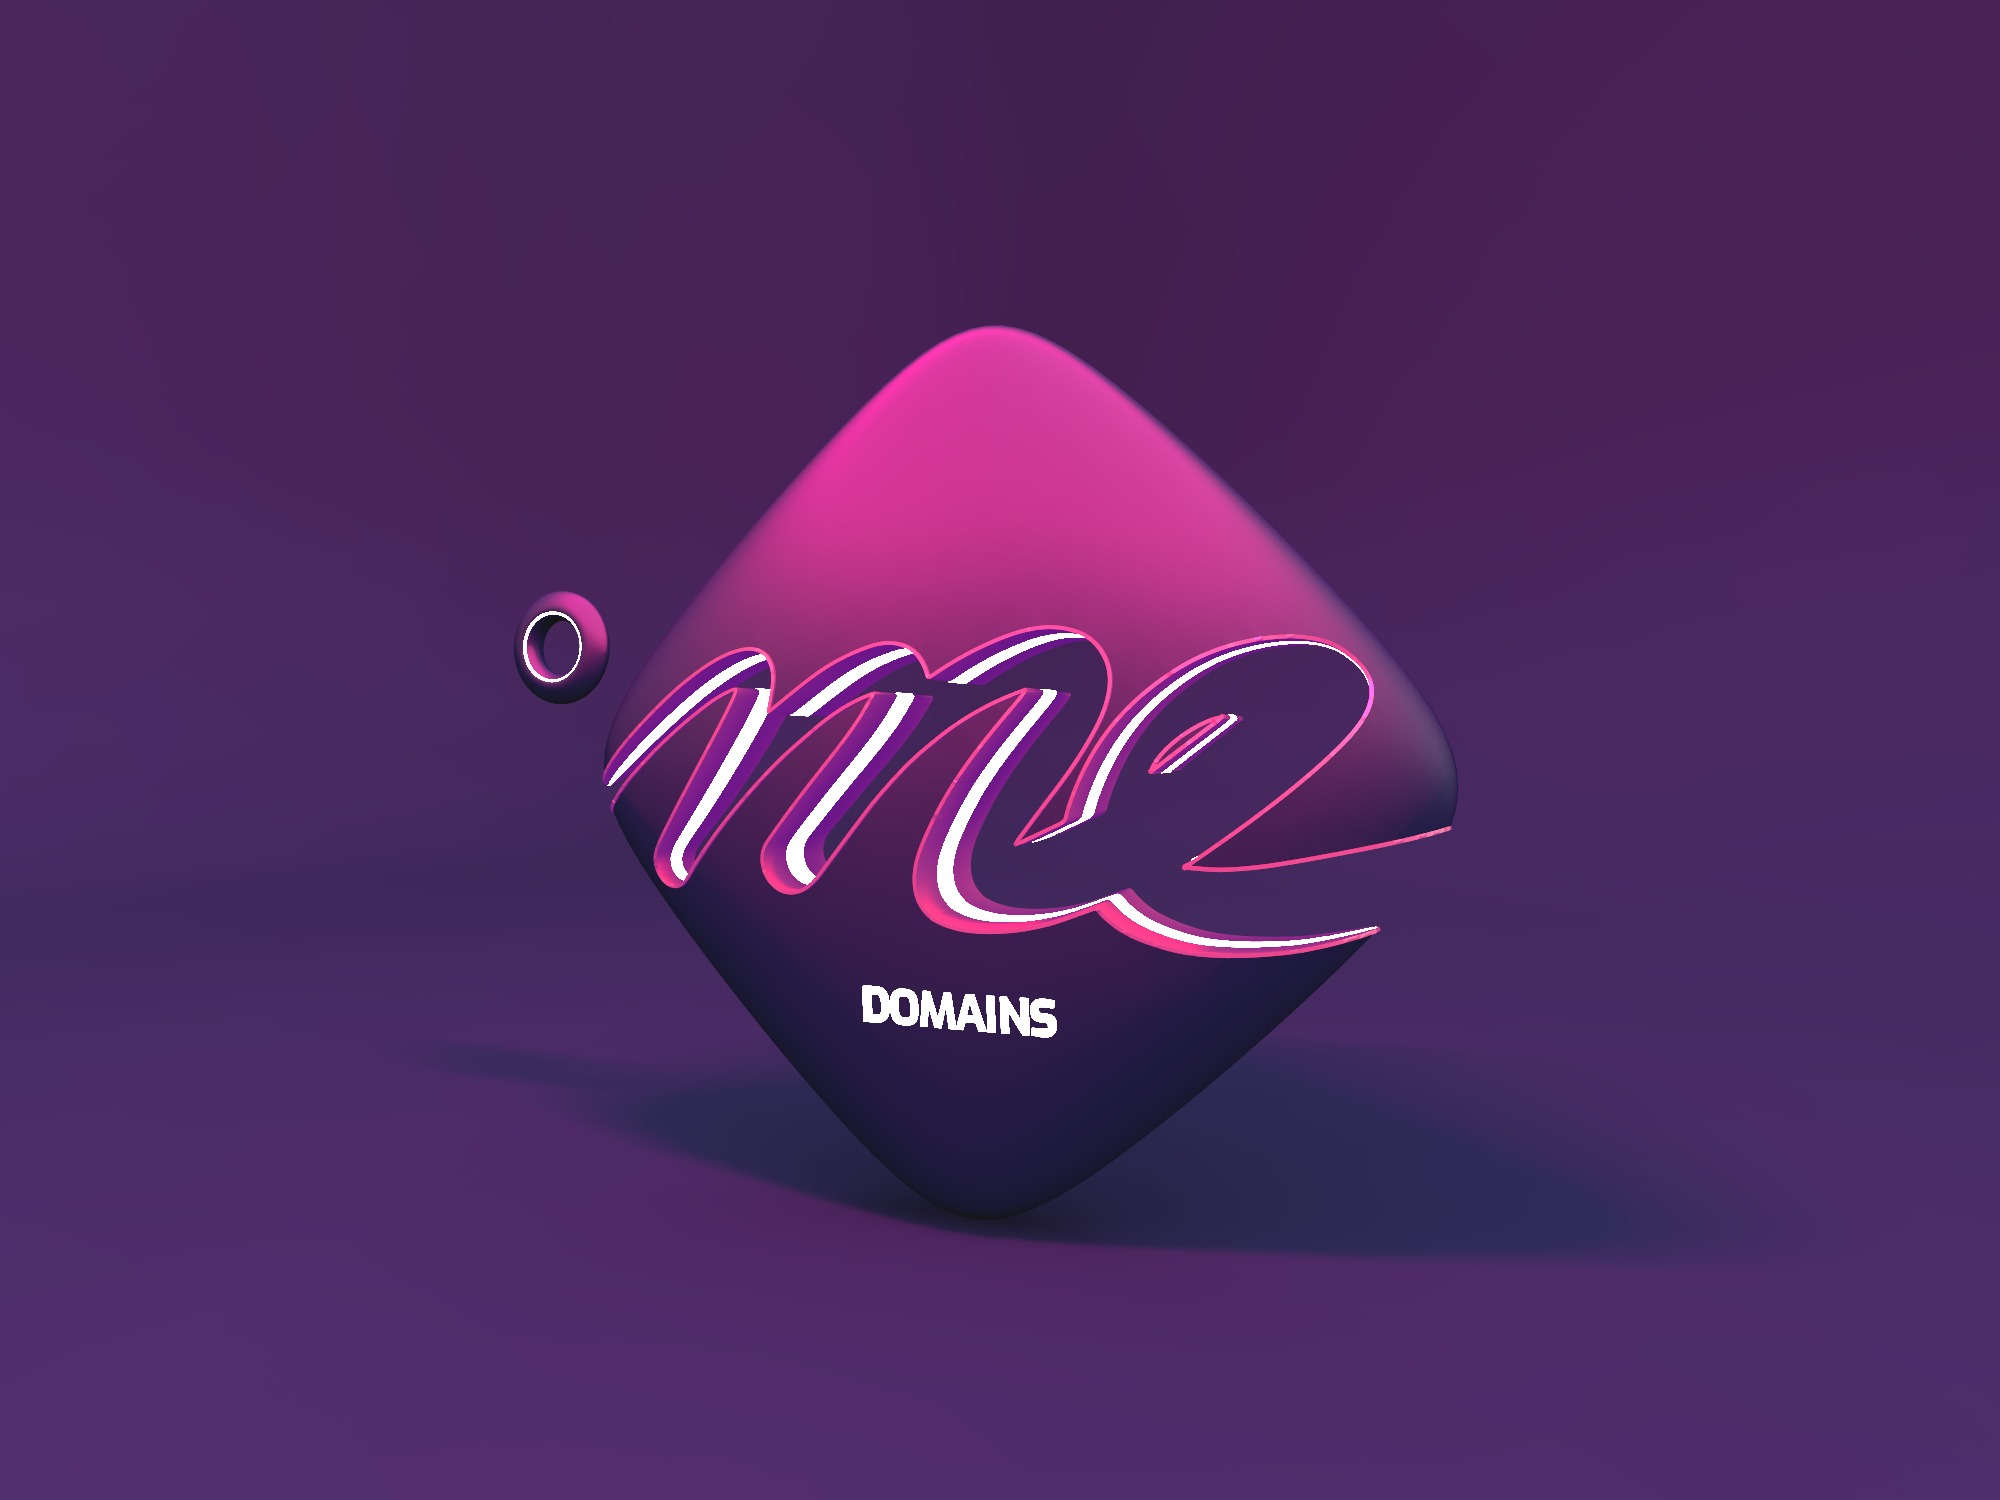 .me domains - 3D design by drafts Jun 27, 2018